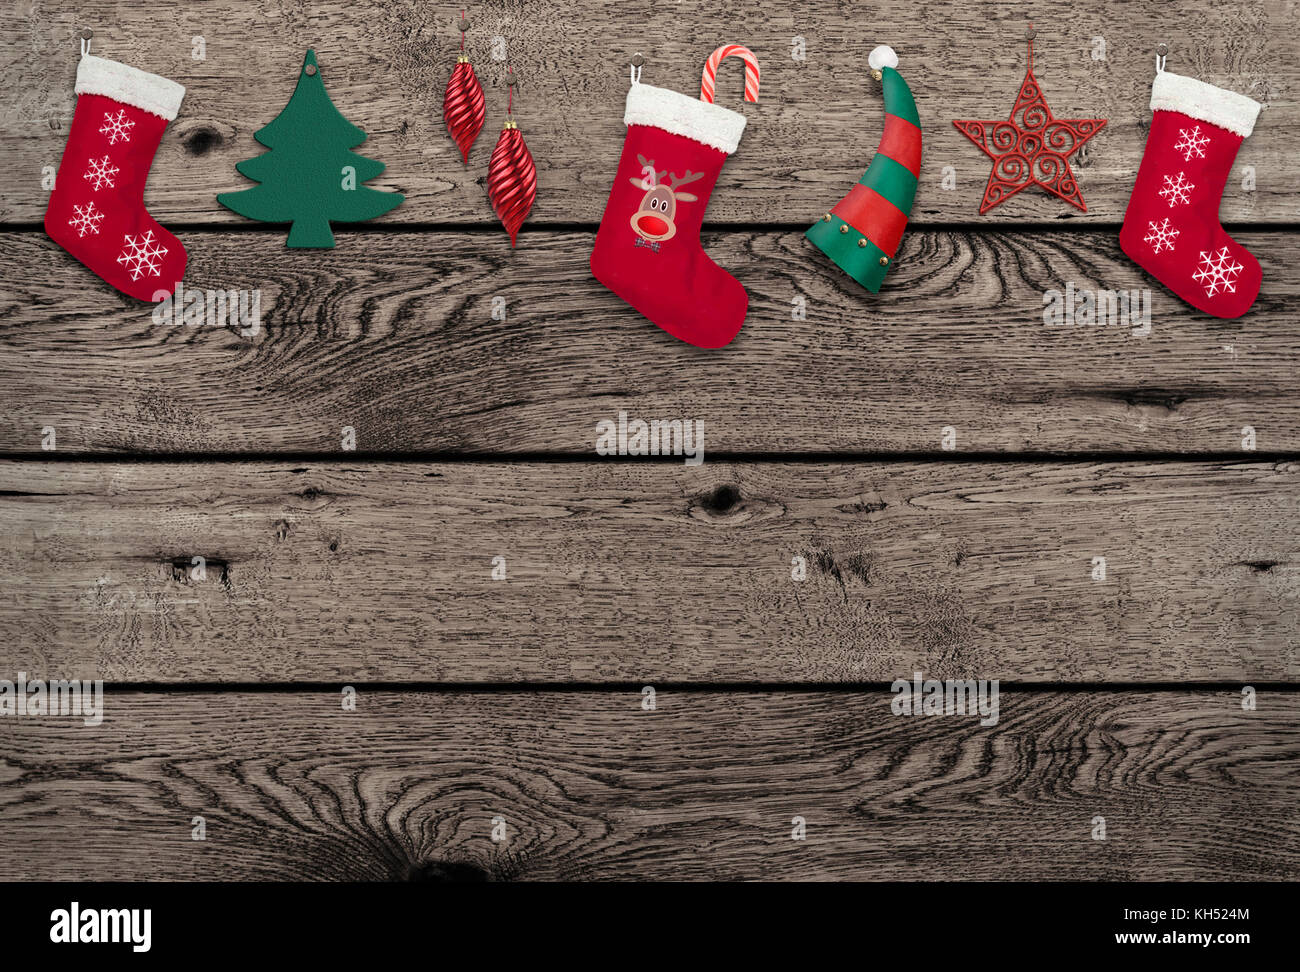 vintage weathered wooden background with cute hanging Christmas elements - Stock Image